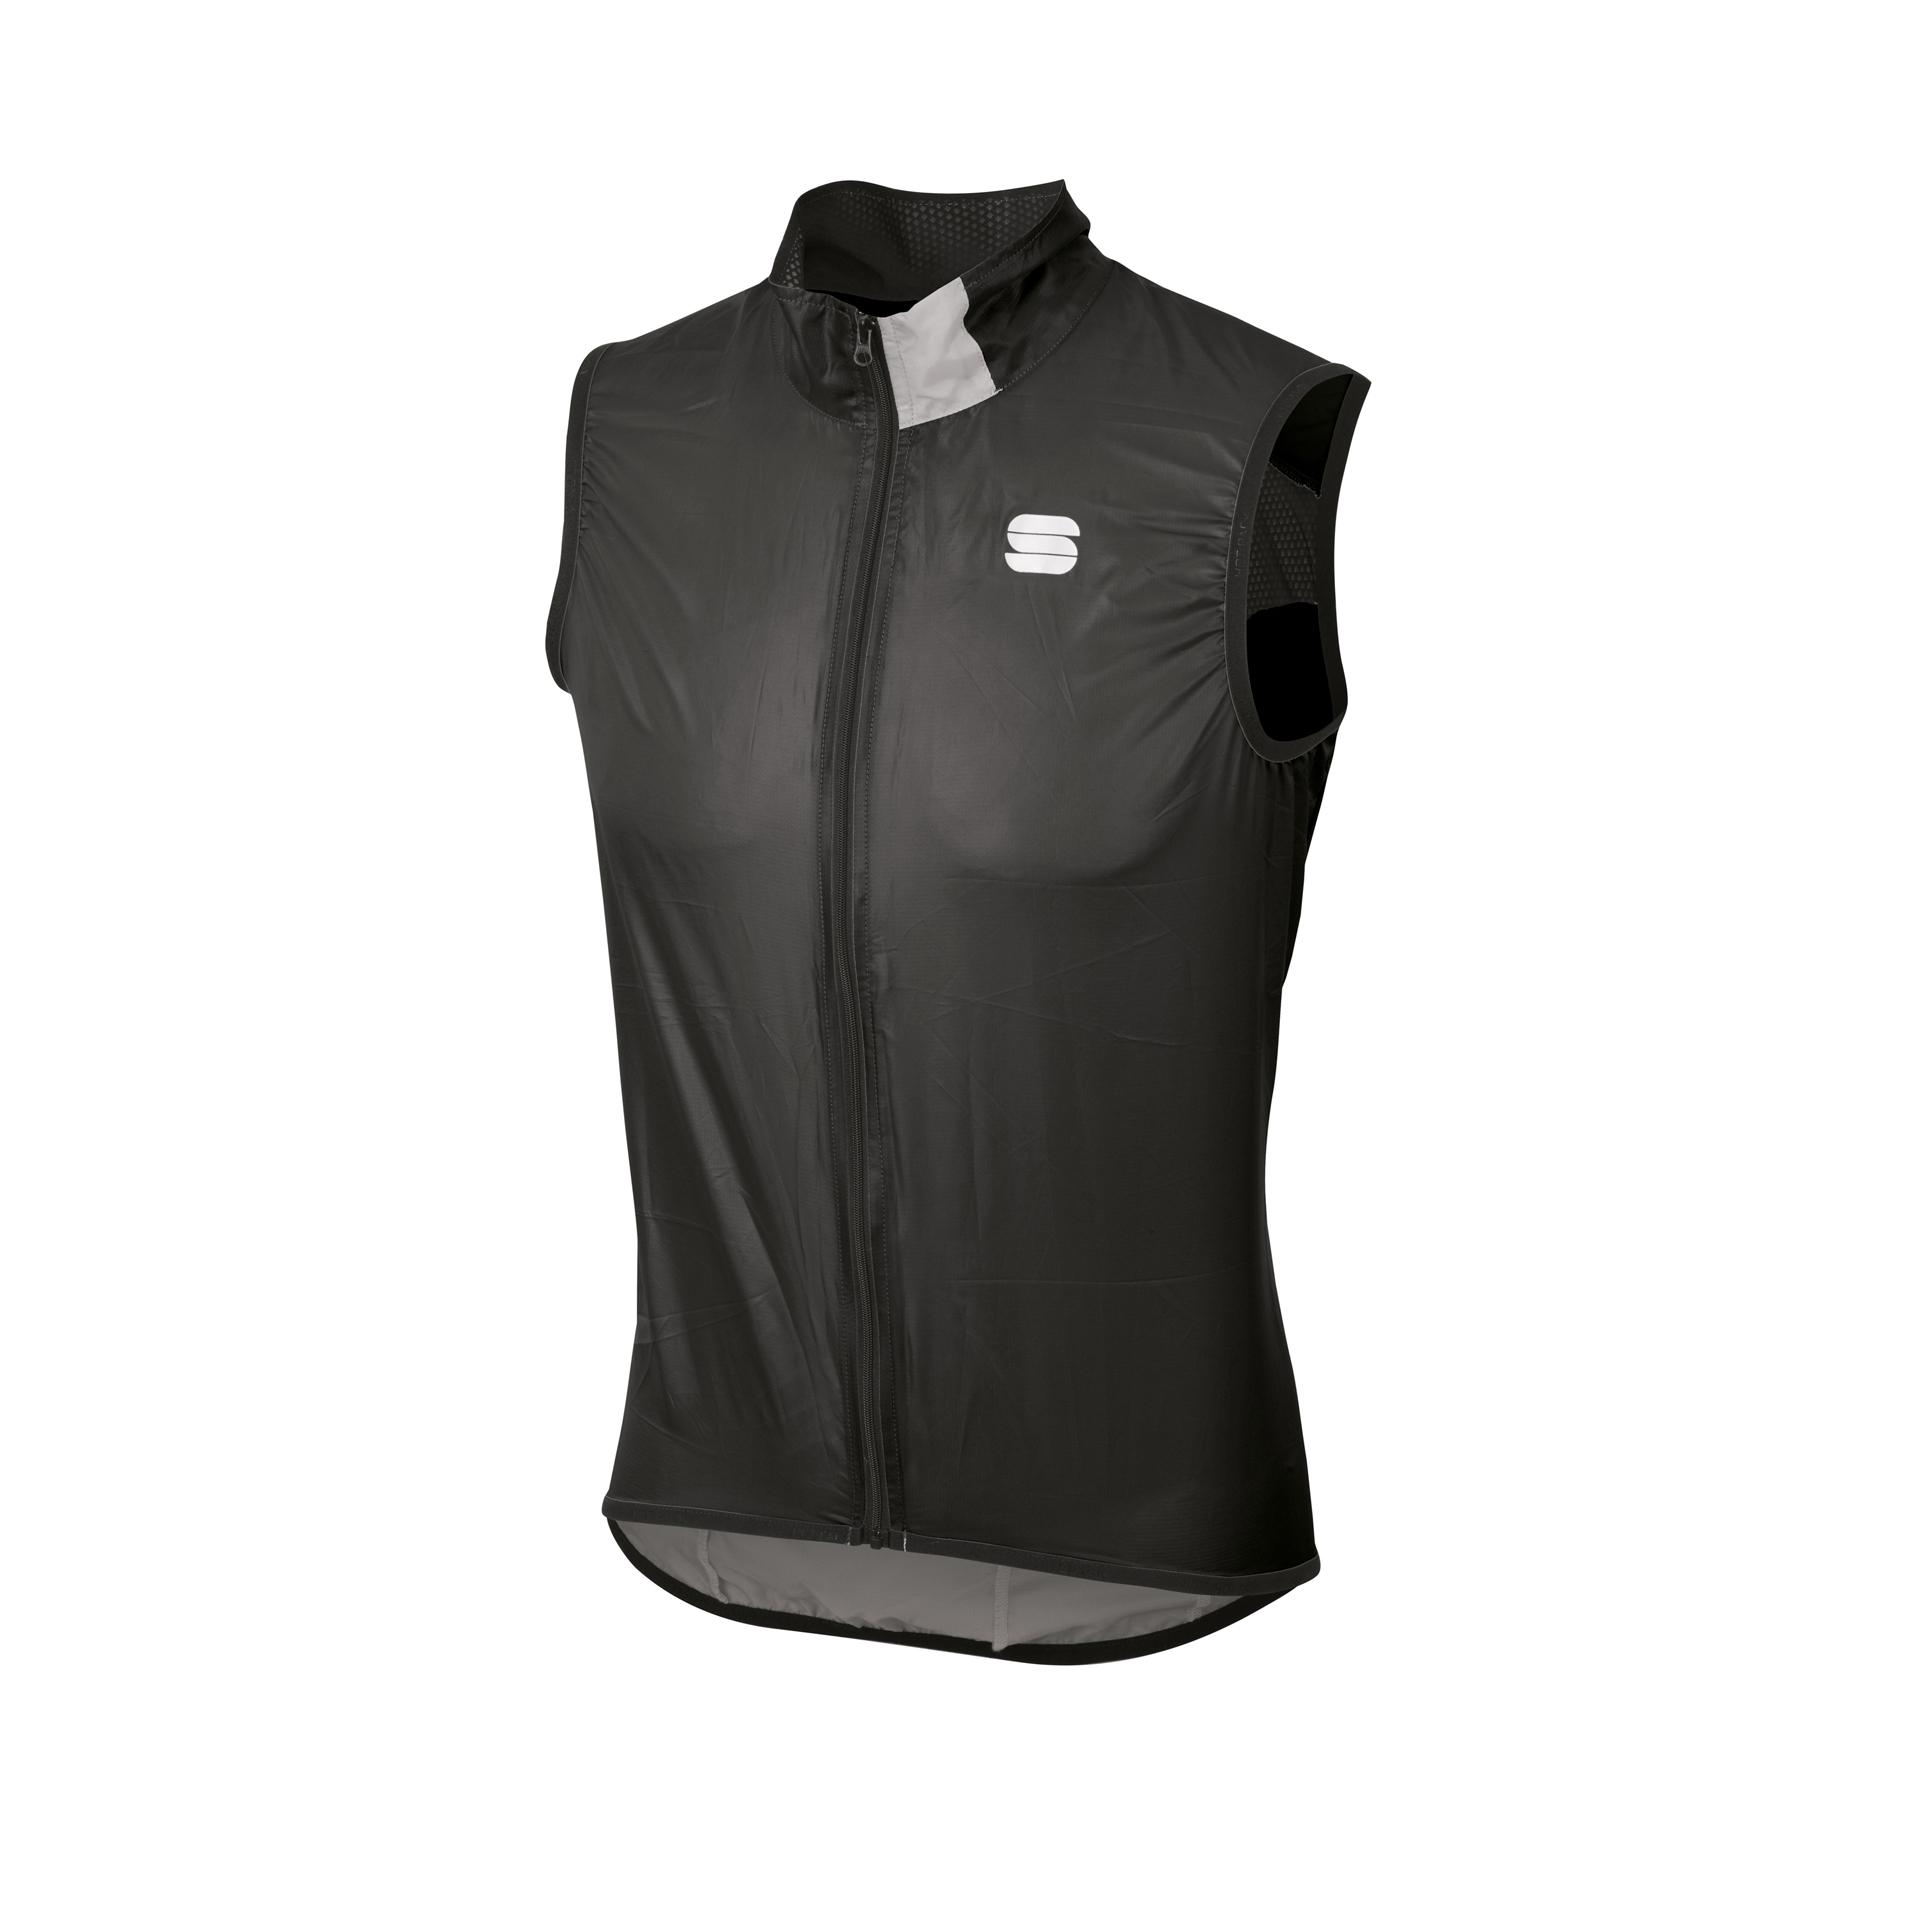 Sportful Windstopper mouwloos Heren Zwart  / SF Hot Pack Easylight Vest-Black